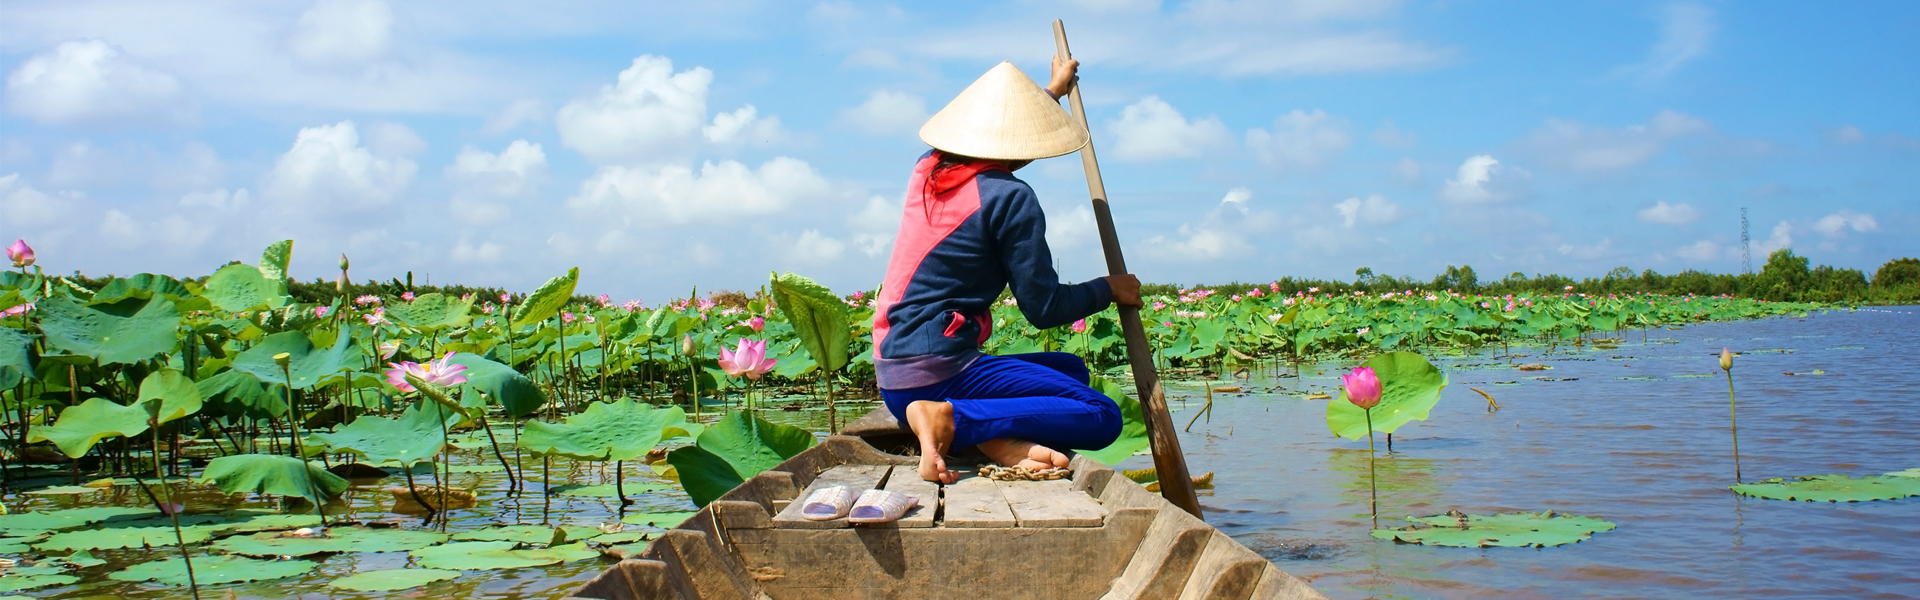 Mekong Impressions Private Tour Tour | Wendy Wu Tours